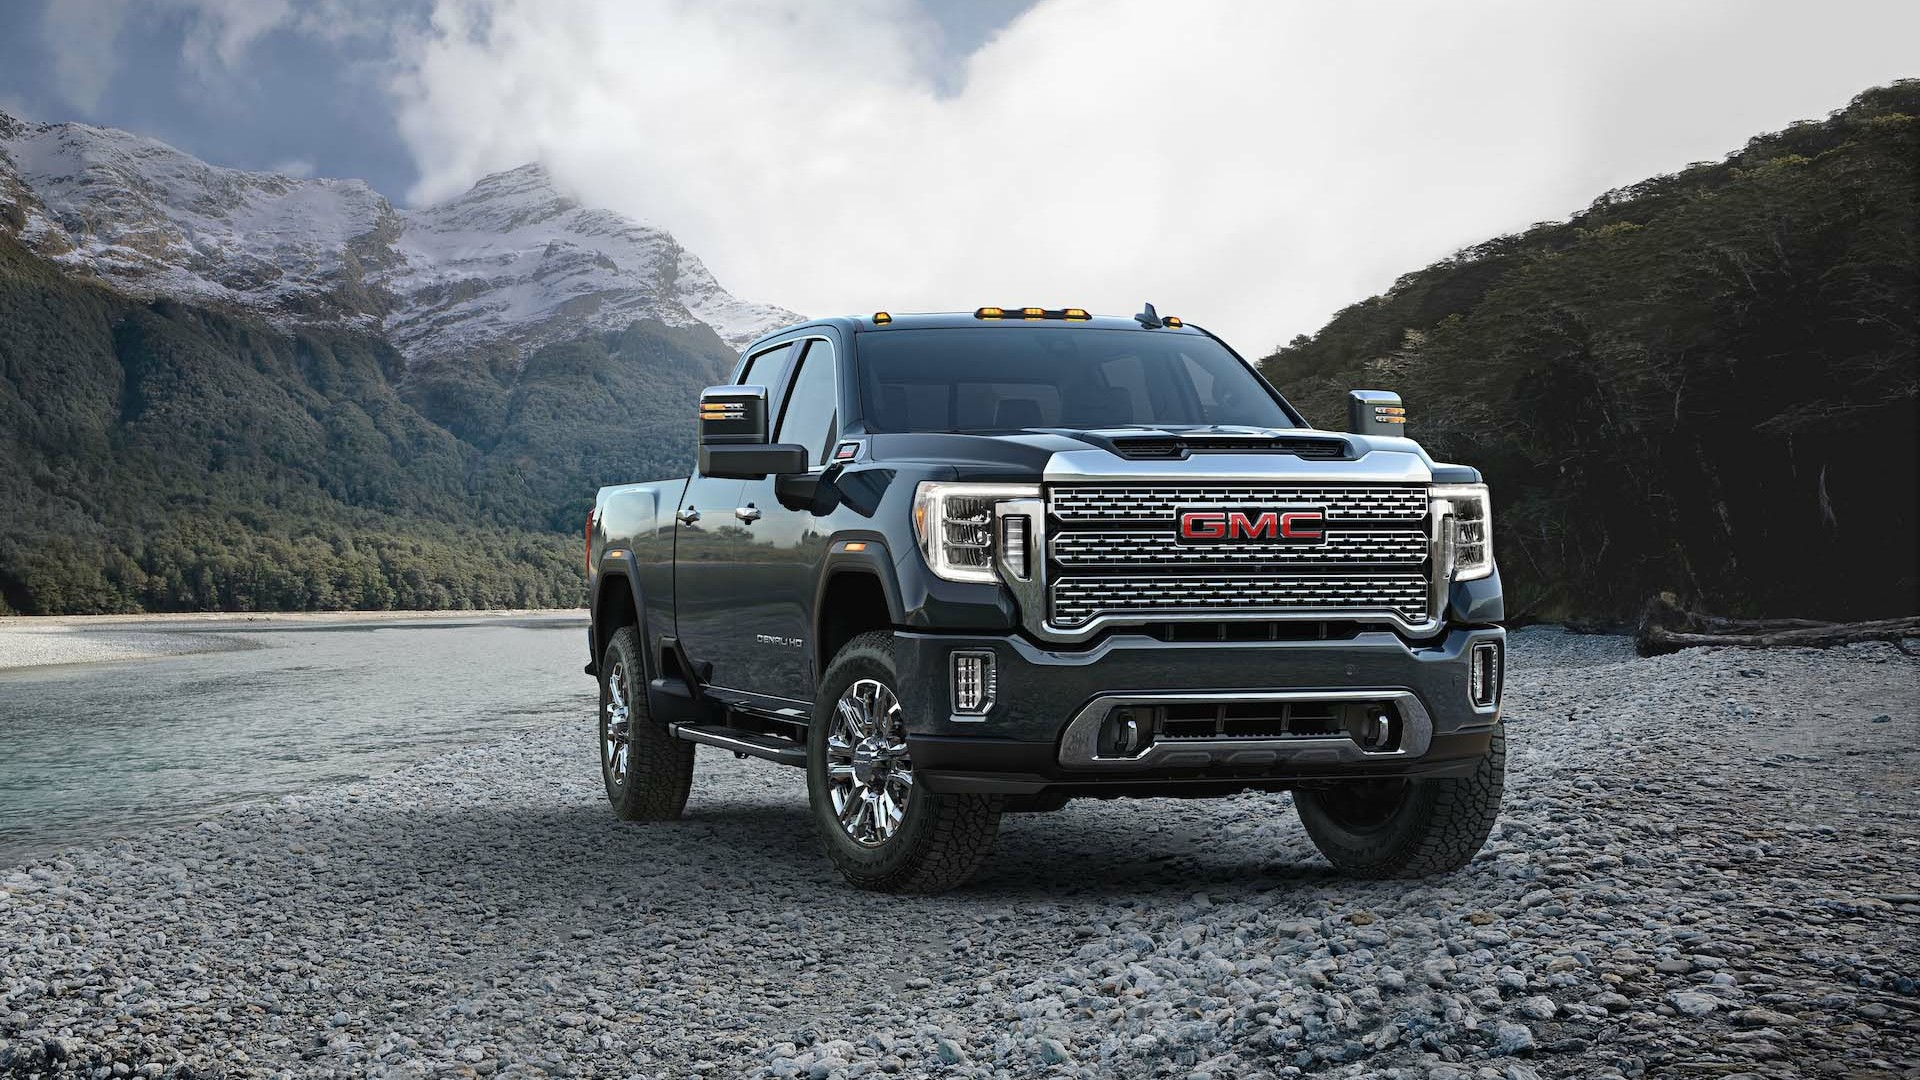 2020 Gmc Sierra Hd Hauls In Lower Starting Price Than Previous Model 2020 Gmc Sierra 2500Hd Crew Cab, Price, Release Date